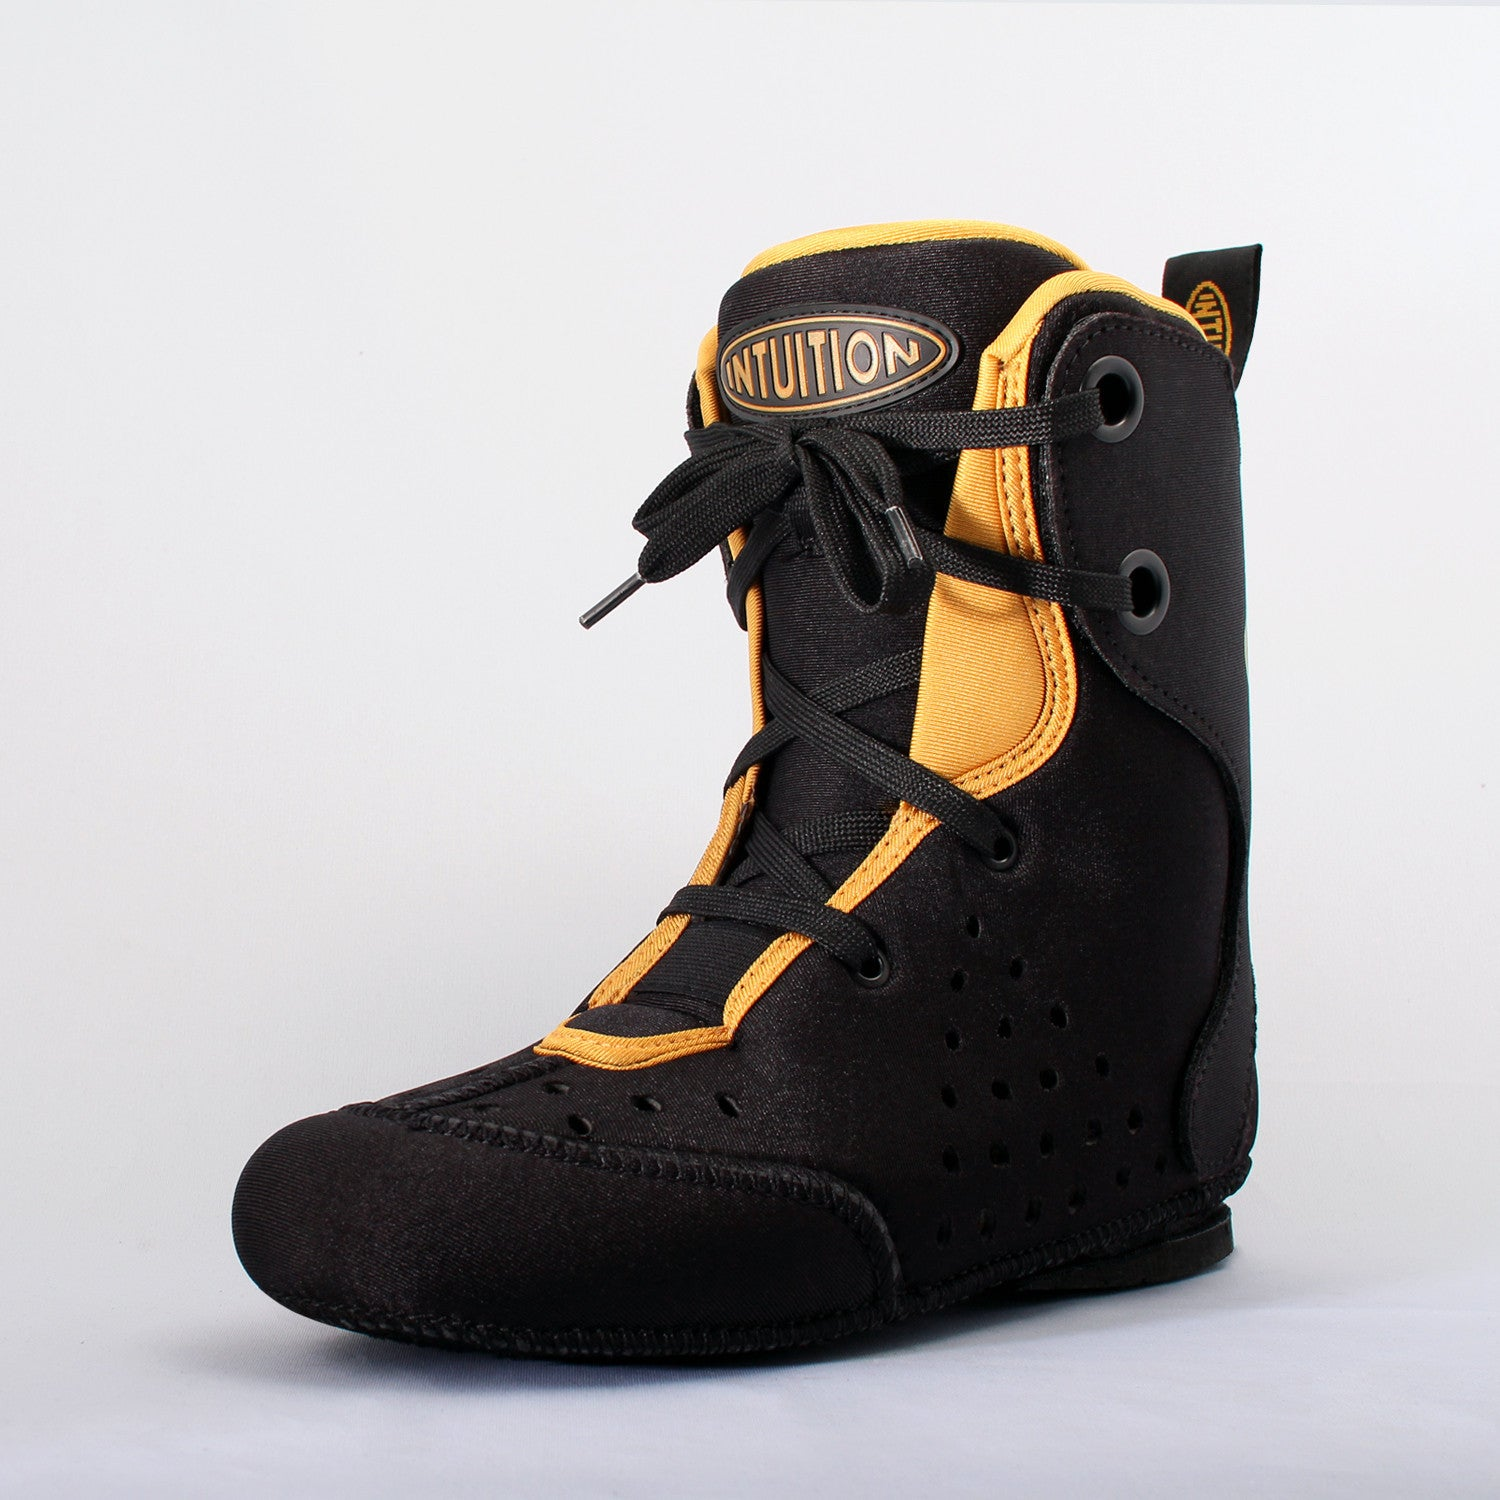 Https Daily Products 1 Hour Powerblade Pro Boot Only Intuition 0102 Fda2dae7 6cc2 494f 9d6e 926dee6ee4b8v1473127972